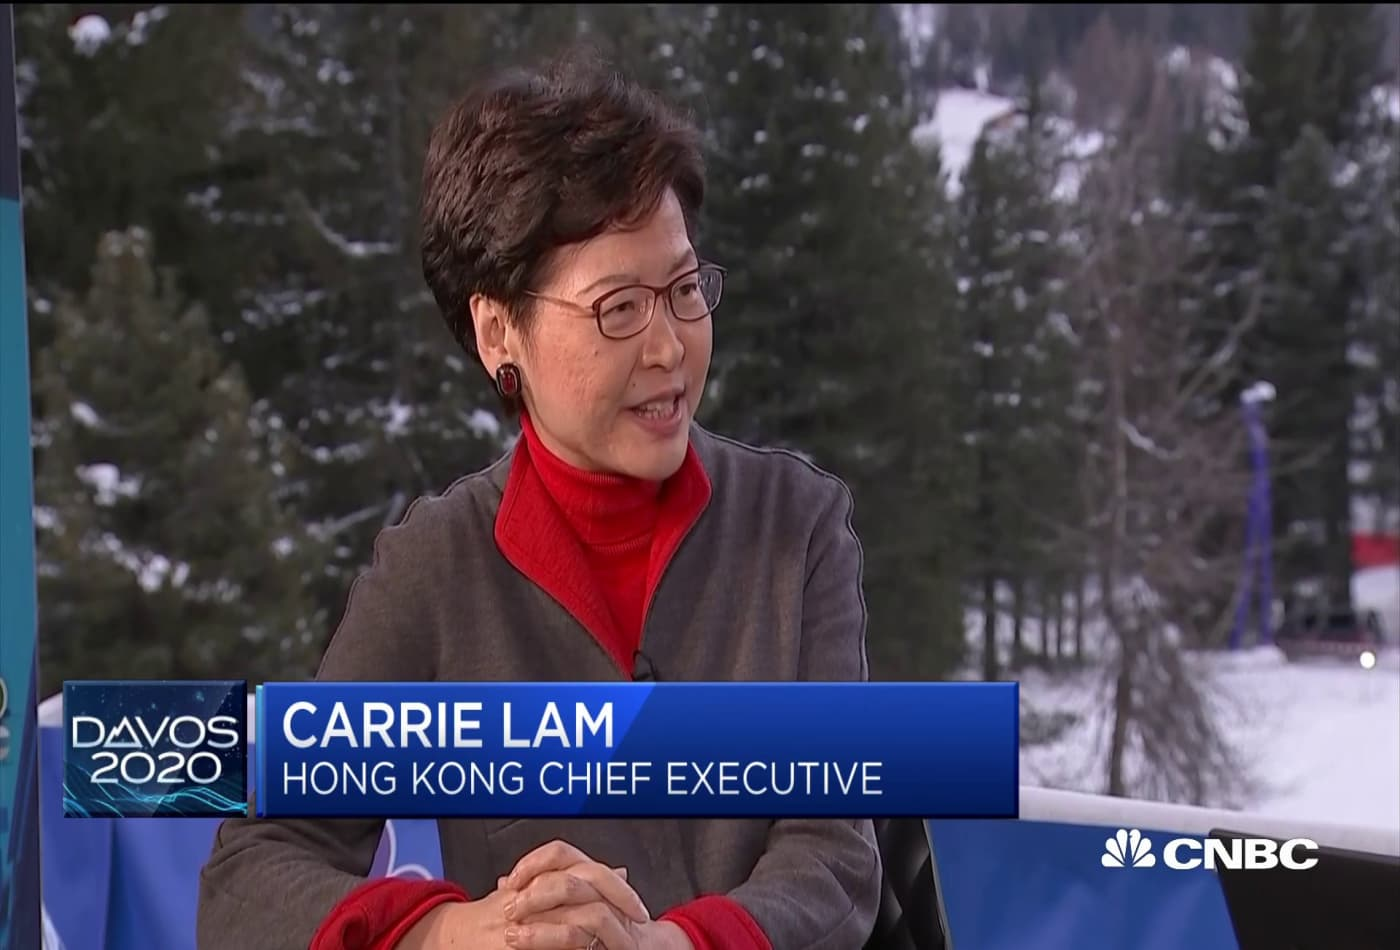 Hong Kong chief executive Carrie Lam responds to calls for her resignation